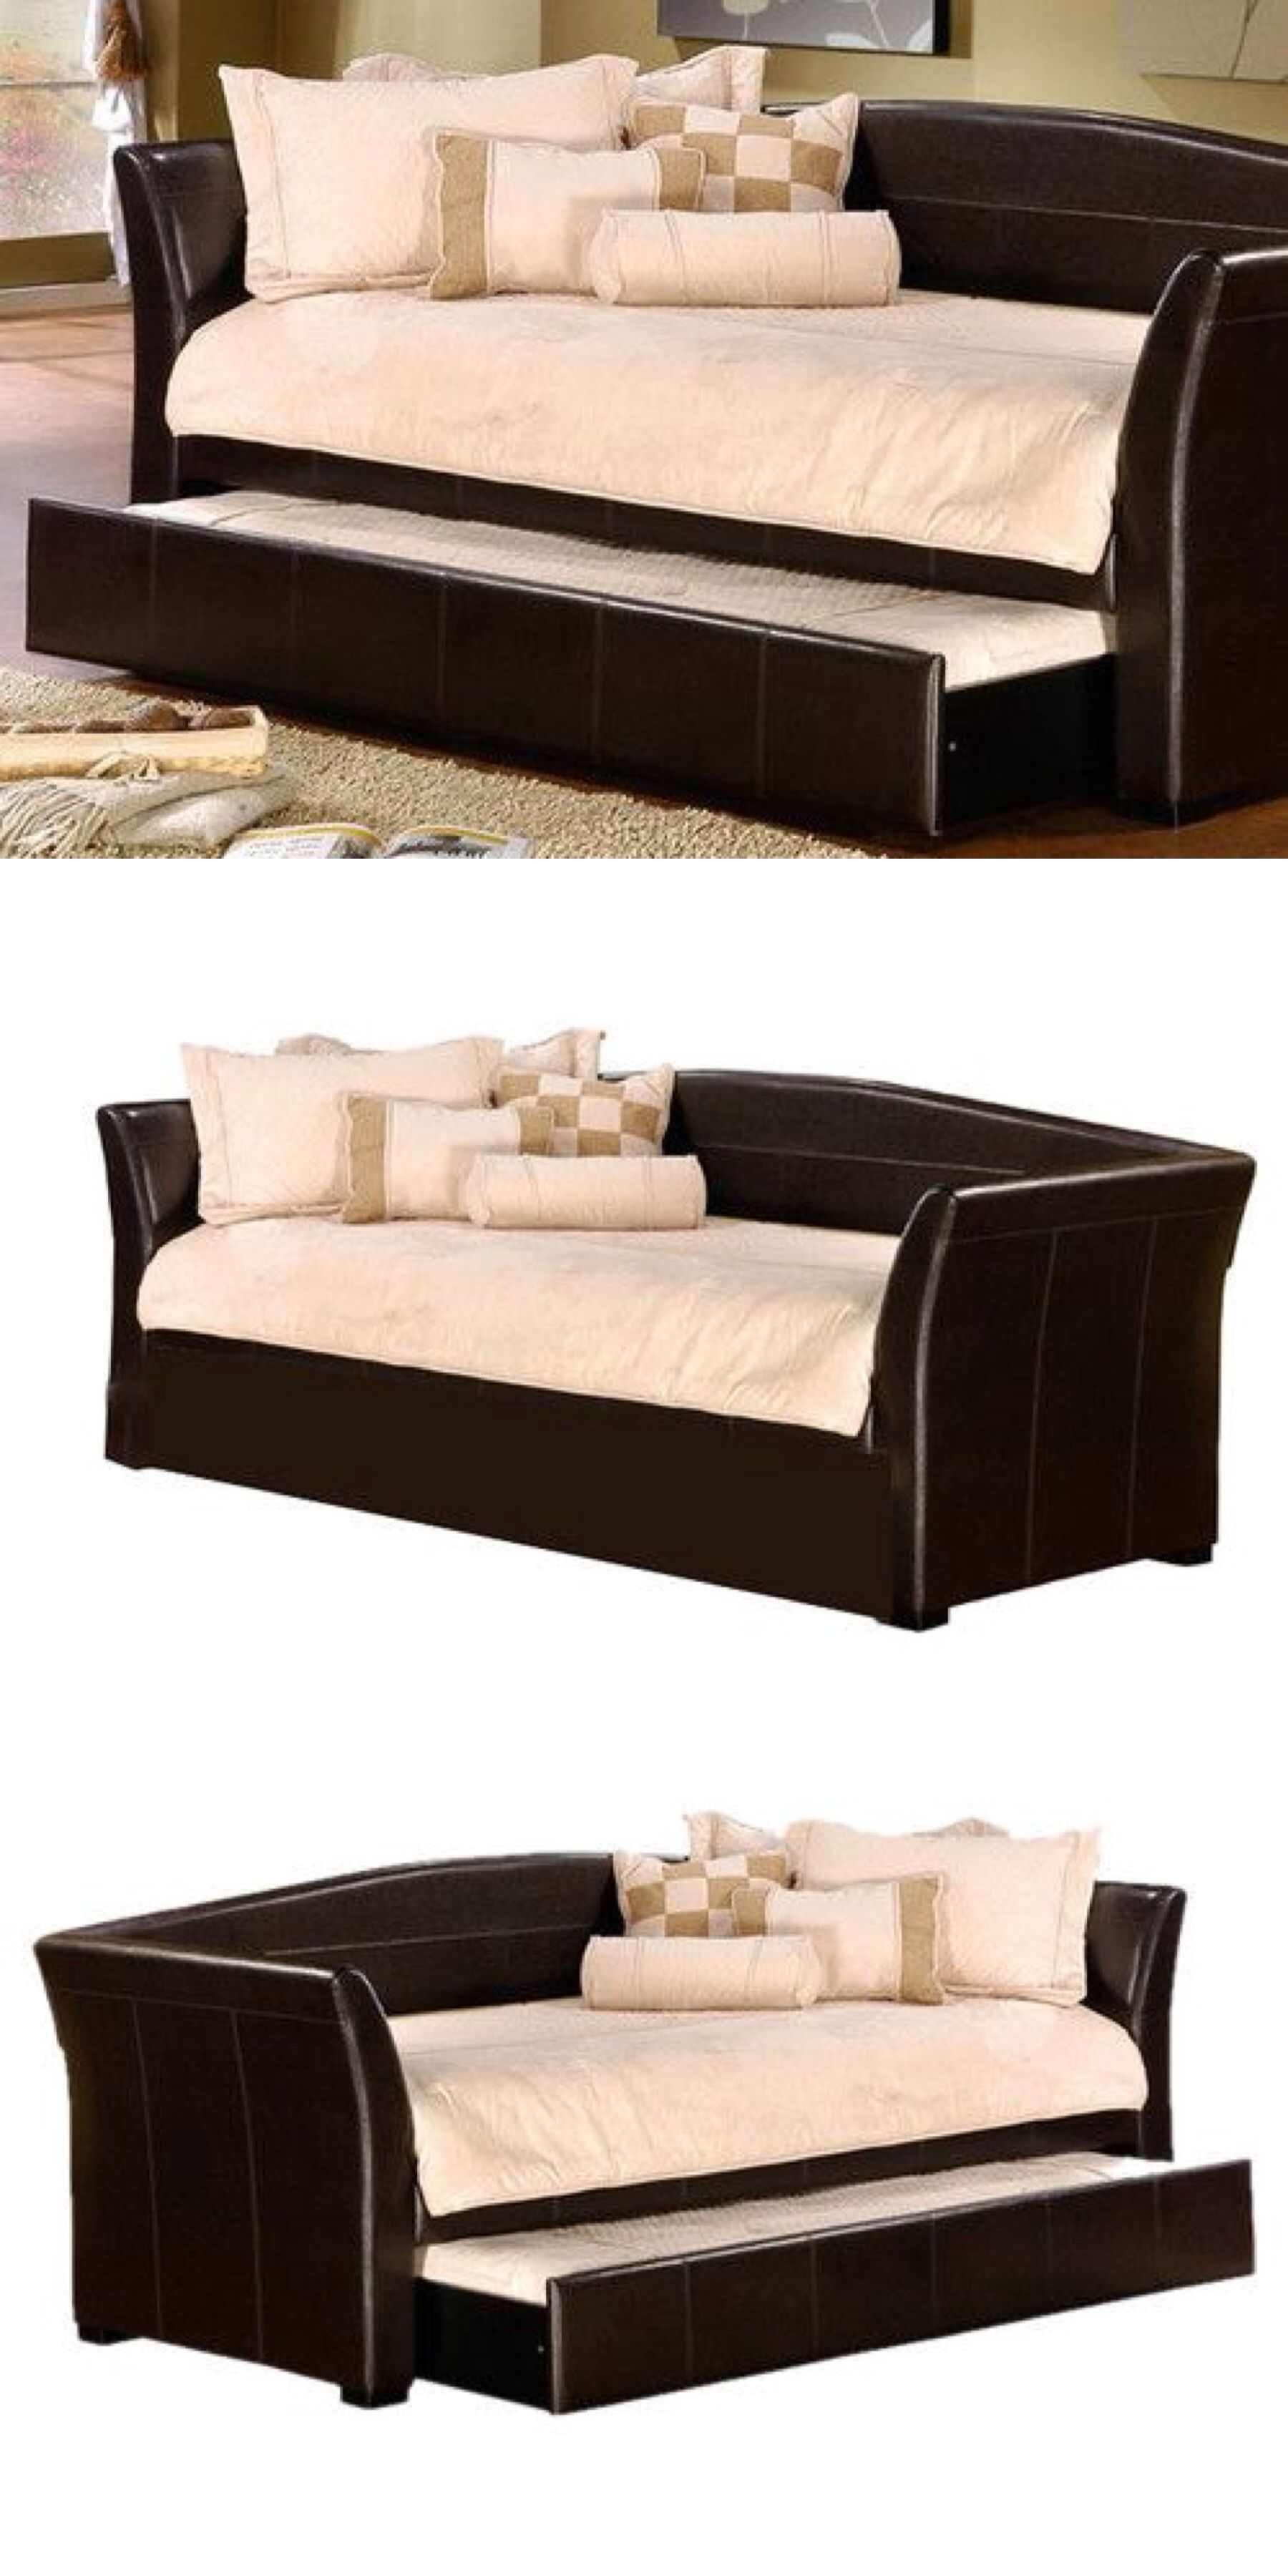 space saving sofa beds how do u clean microfiber day bed with pull out trundle great